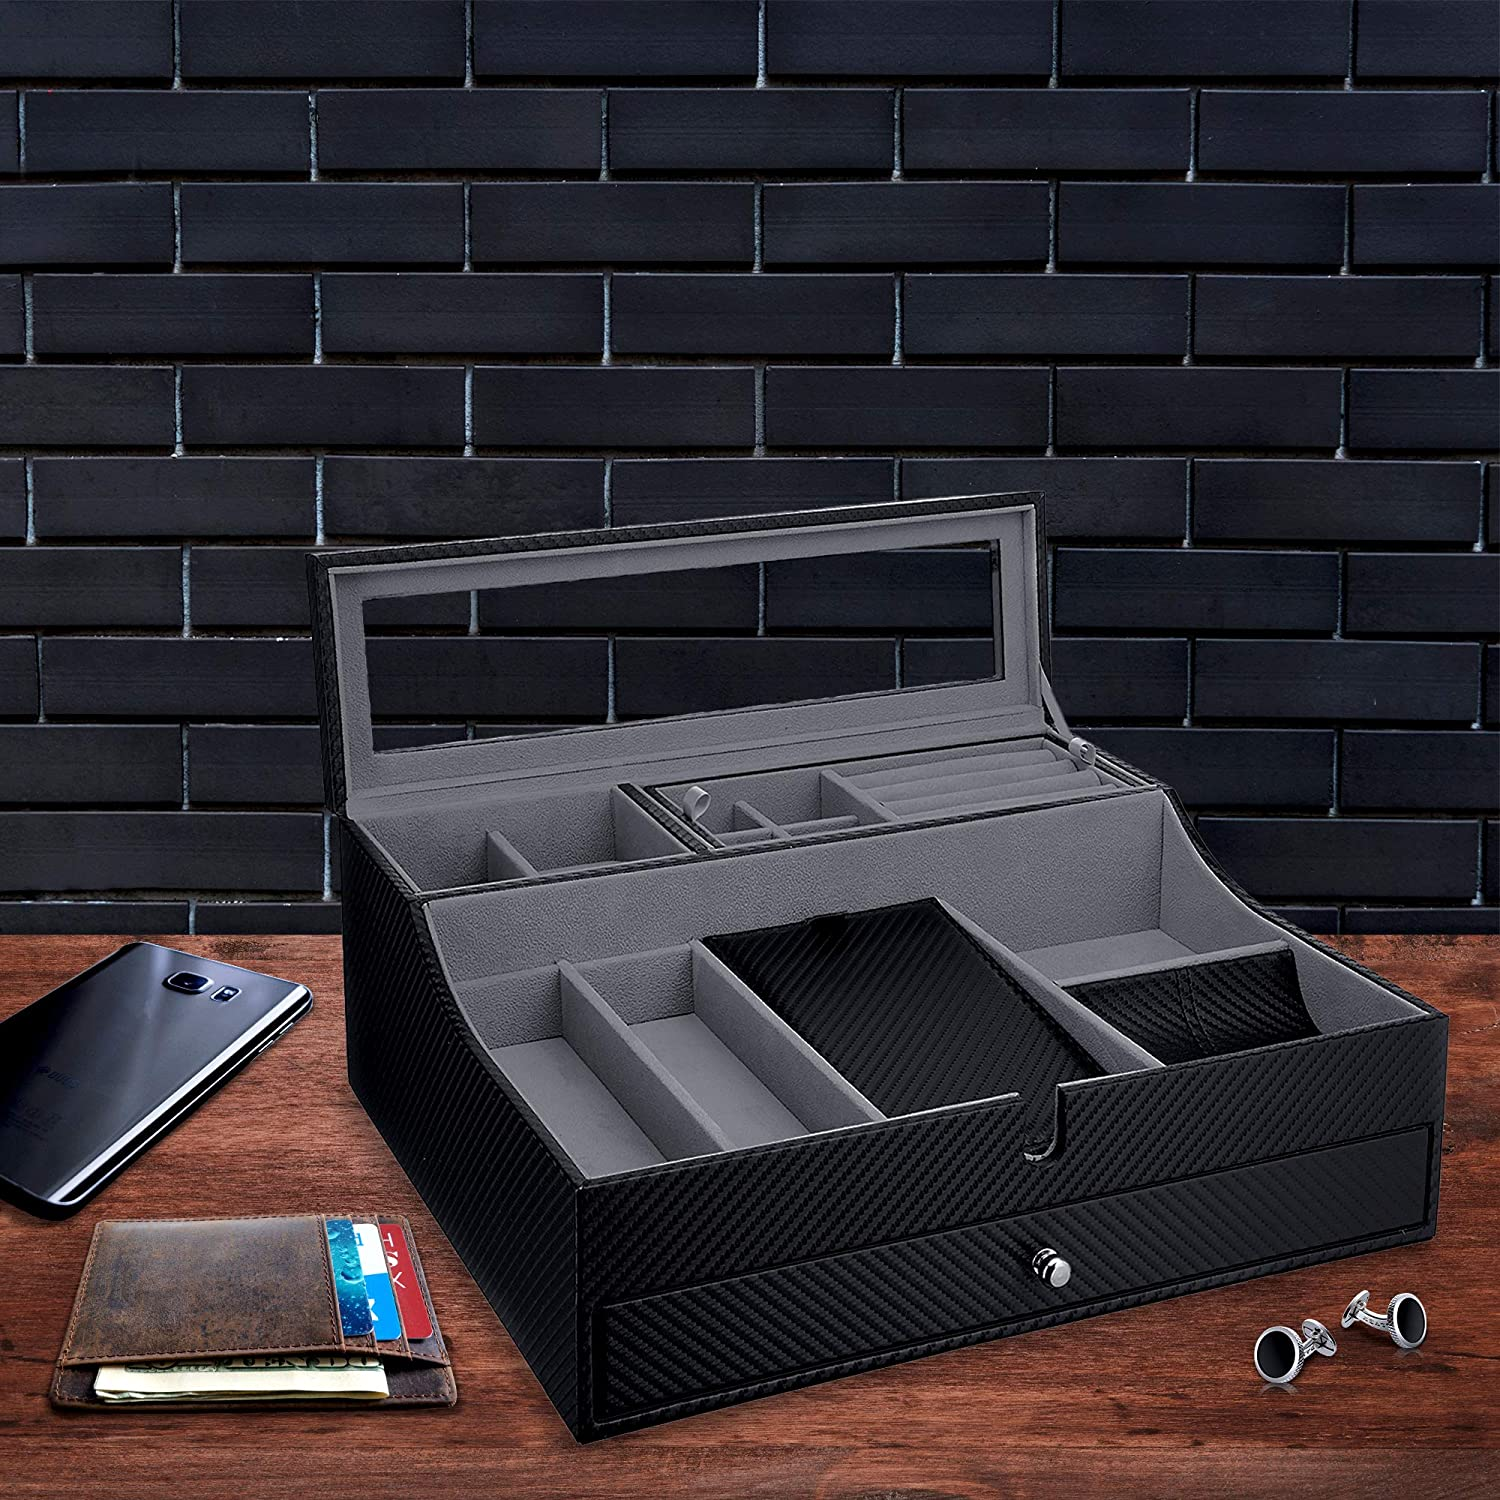 Valet Tray for Men| Sleek Dresser-Organizer Box for Storage & Display| Perfect for Phone, Watches, Sunglasses, Jewelry, Wallet, Rings, Necklace & More| Carbon Fiber & Faux Leather: Home Improvement